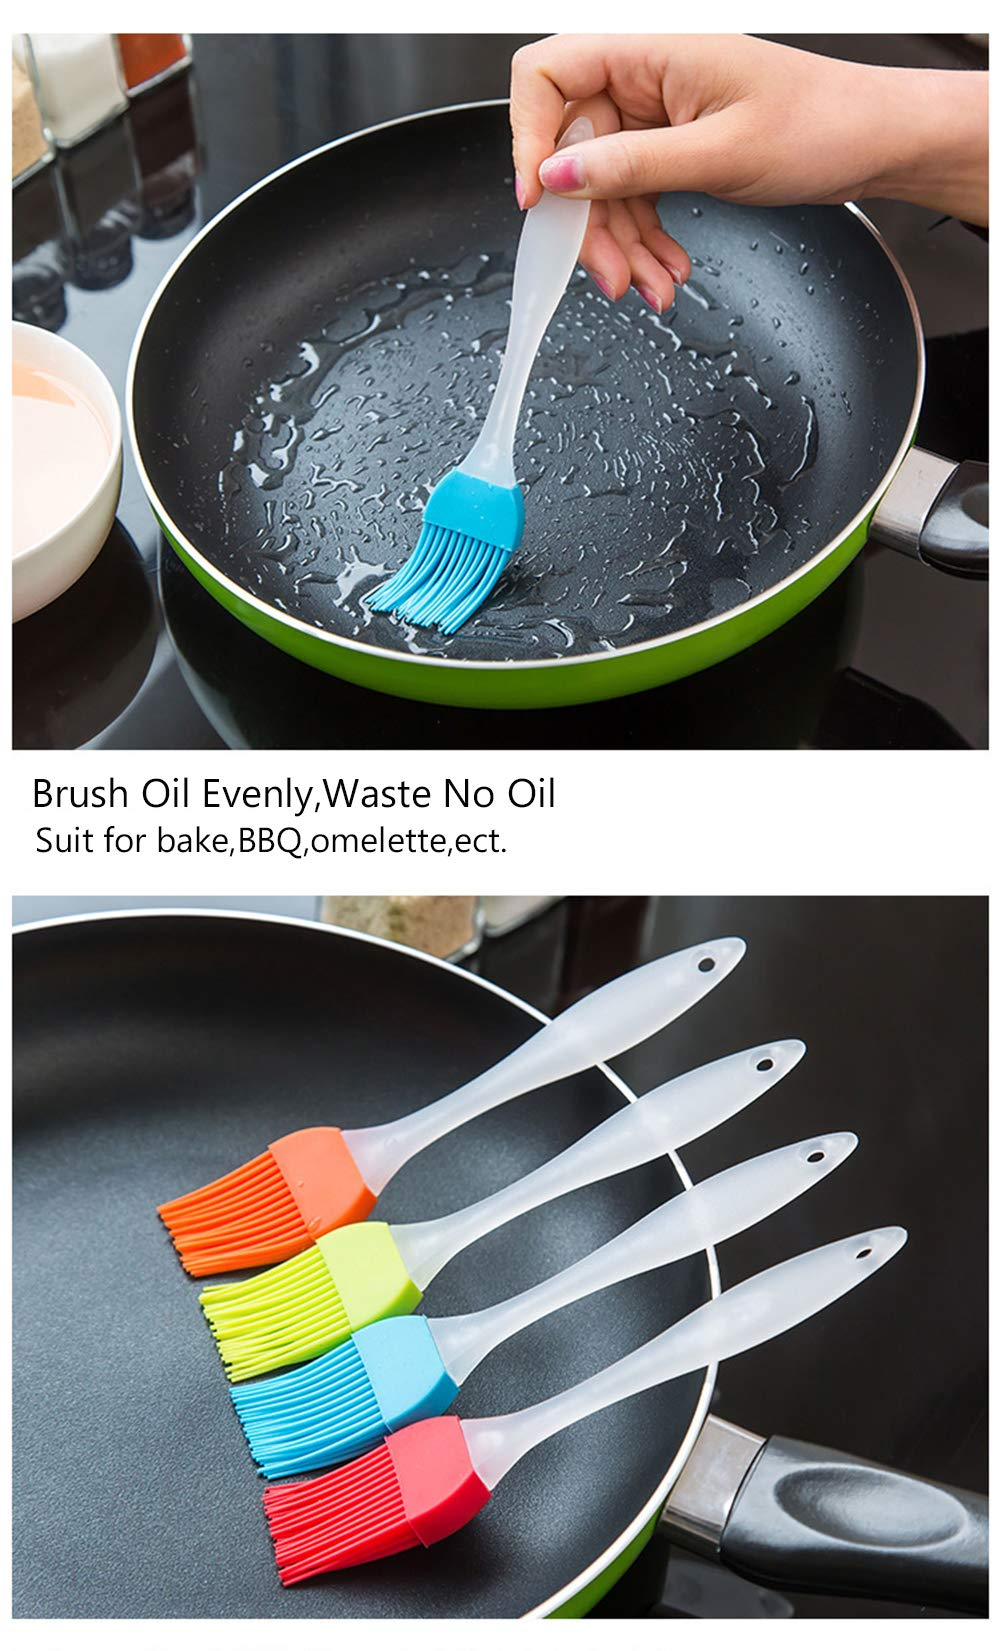 FDIO 5 Pcs Silicone Pastry/Basting/Oil Brush,Kitchen Gadgets for BBQ,Meat,Grilling,Cakes,(Multicolor) 5 MATERIAL: The oil brush head is made of food-grade silicone, which can withstand high temperature. The handle is environment-friendly PP which is non-toxic and durable FIVE COLOR TO CREATE FOOD: Including multiple colour 5 silicone brushes in one set, vibrant colors, avoid flavor crossing by using one color for different seasoning LIGHTWEIGHT DESIGN: The lightweight handle provides a soft comfortable firm grip making basting easy, quick and effortless coating action, can be used in many applications